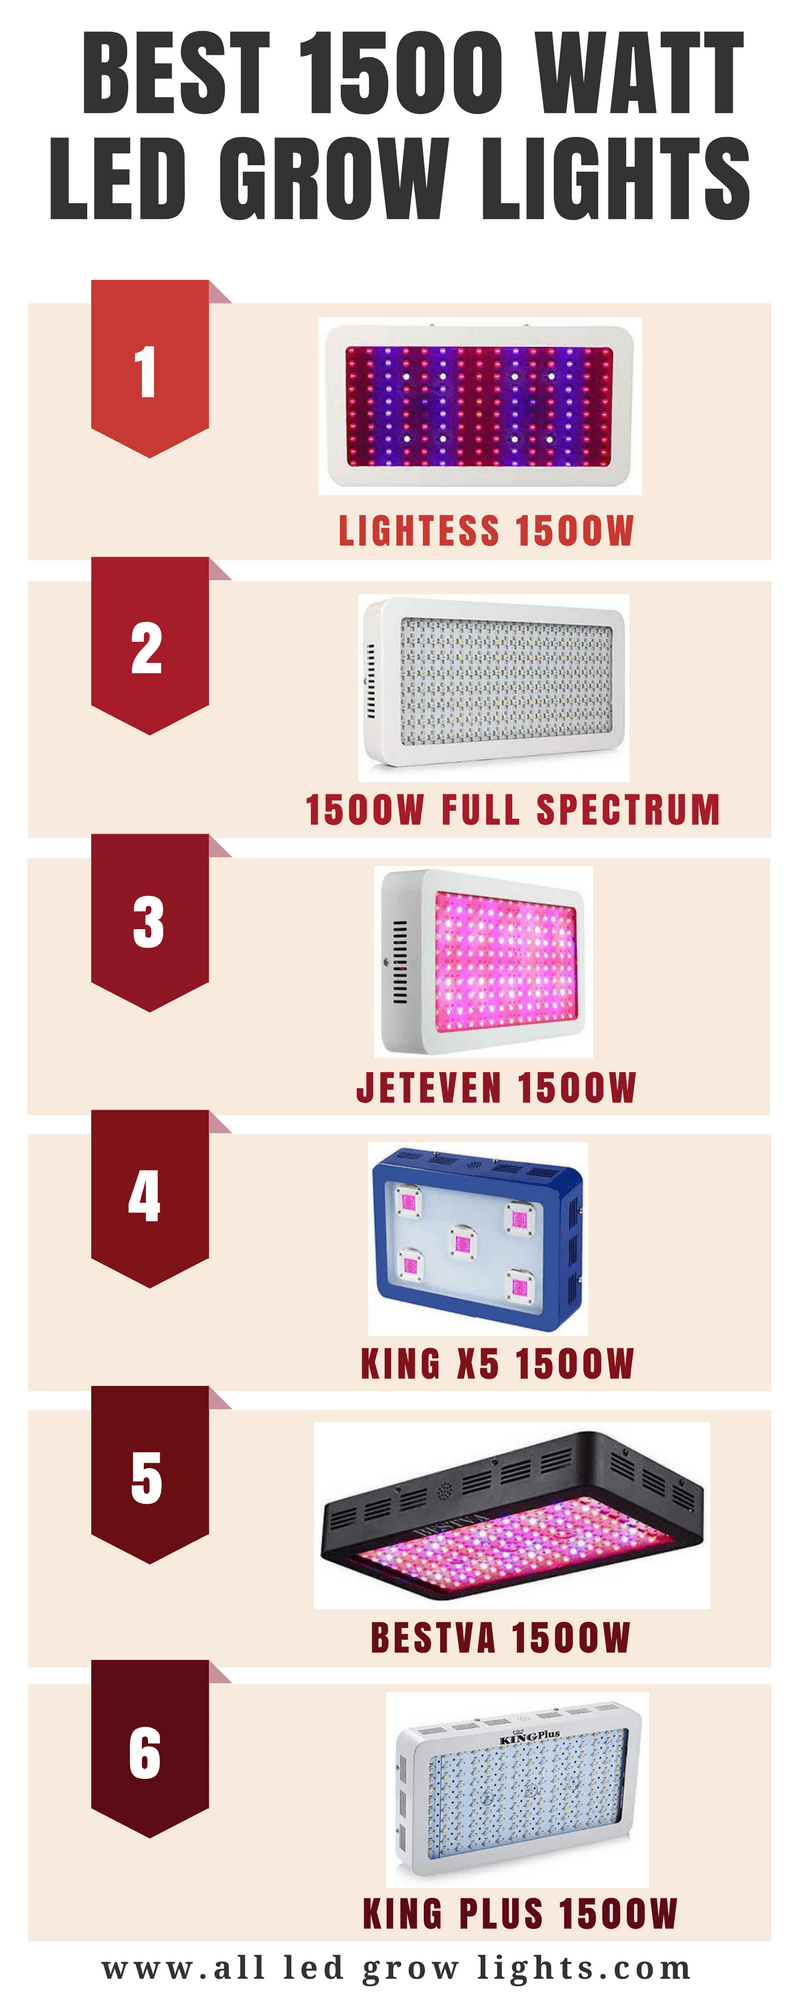 1500 watt led grow light info graph